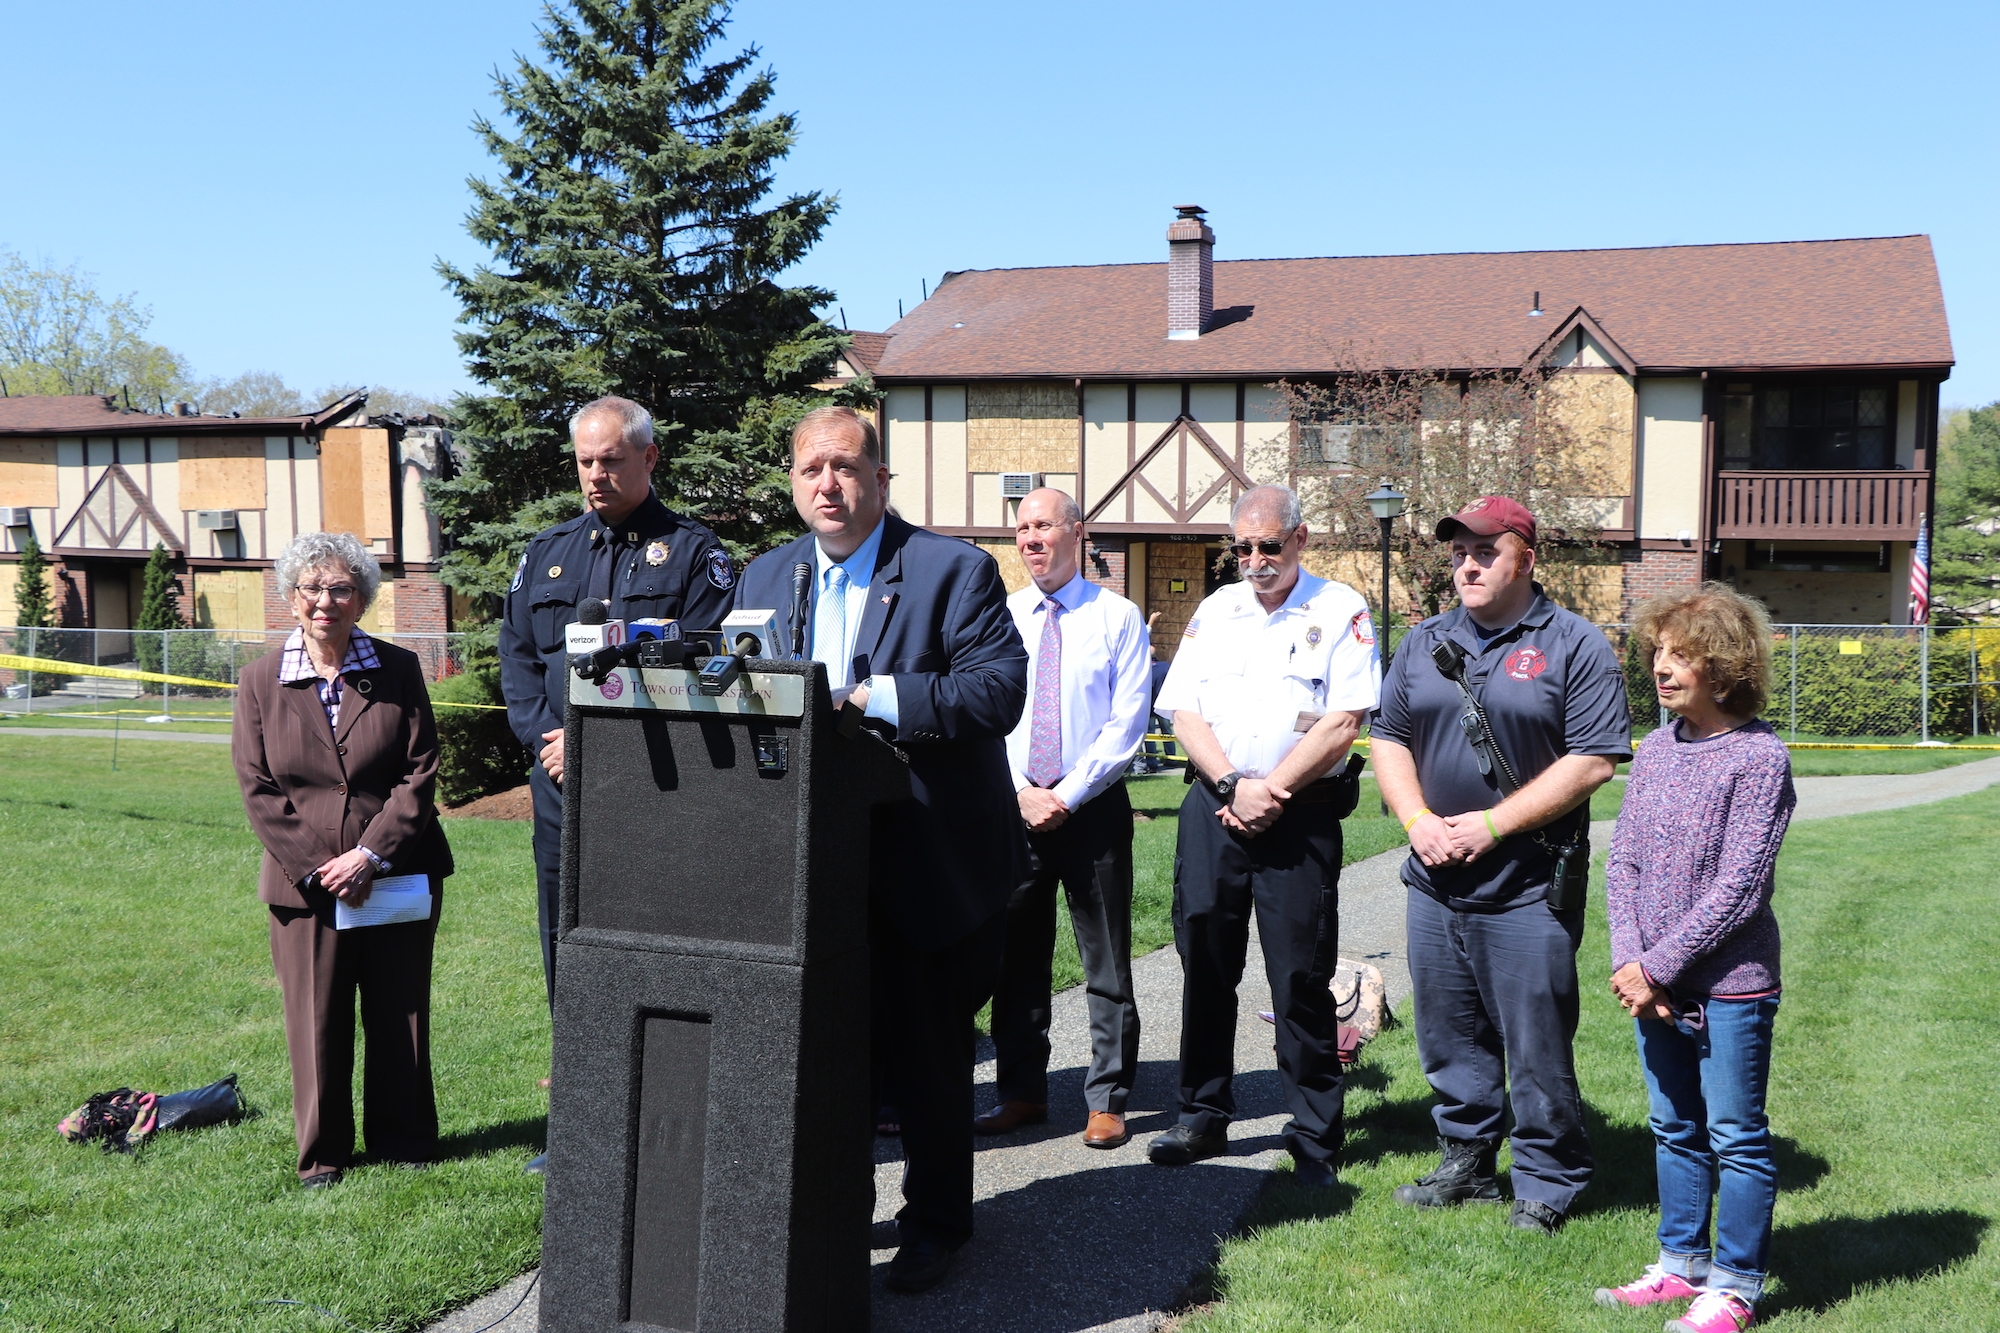 Clarkstown Supervisor George Hoehmann, Rockland County Voluntary Organizations Active in Disaster (RCVOAD), and other Officials Announce Ways to Help Victims of Mountainview Condos Fire